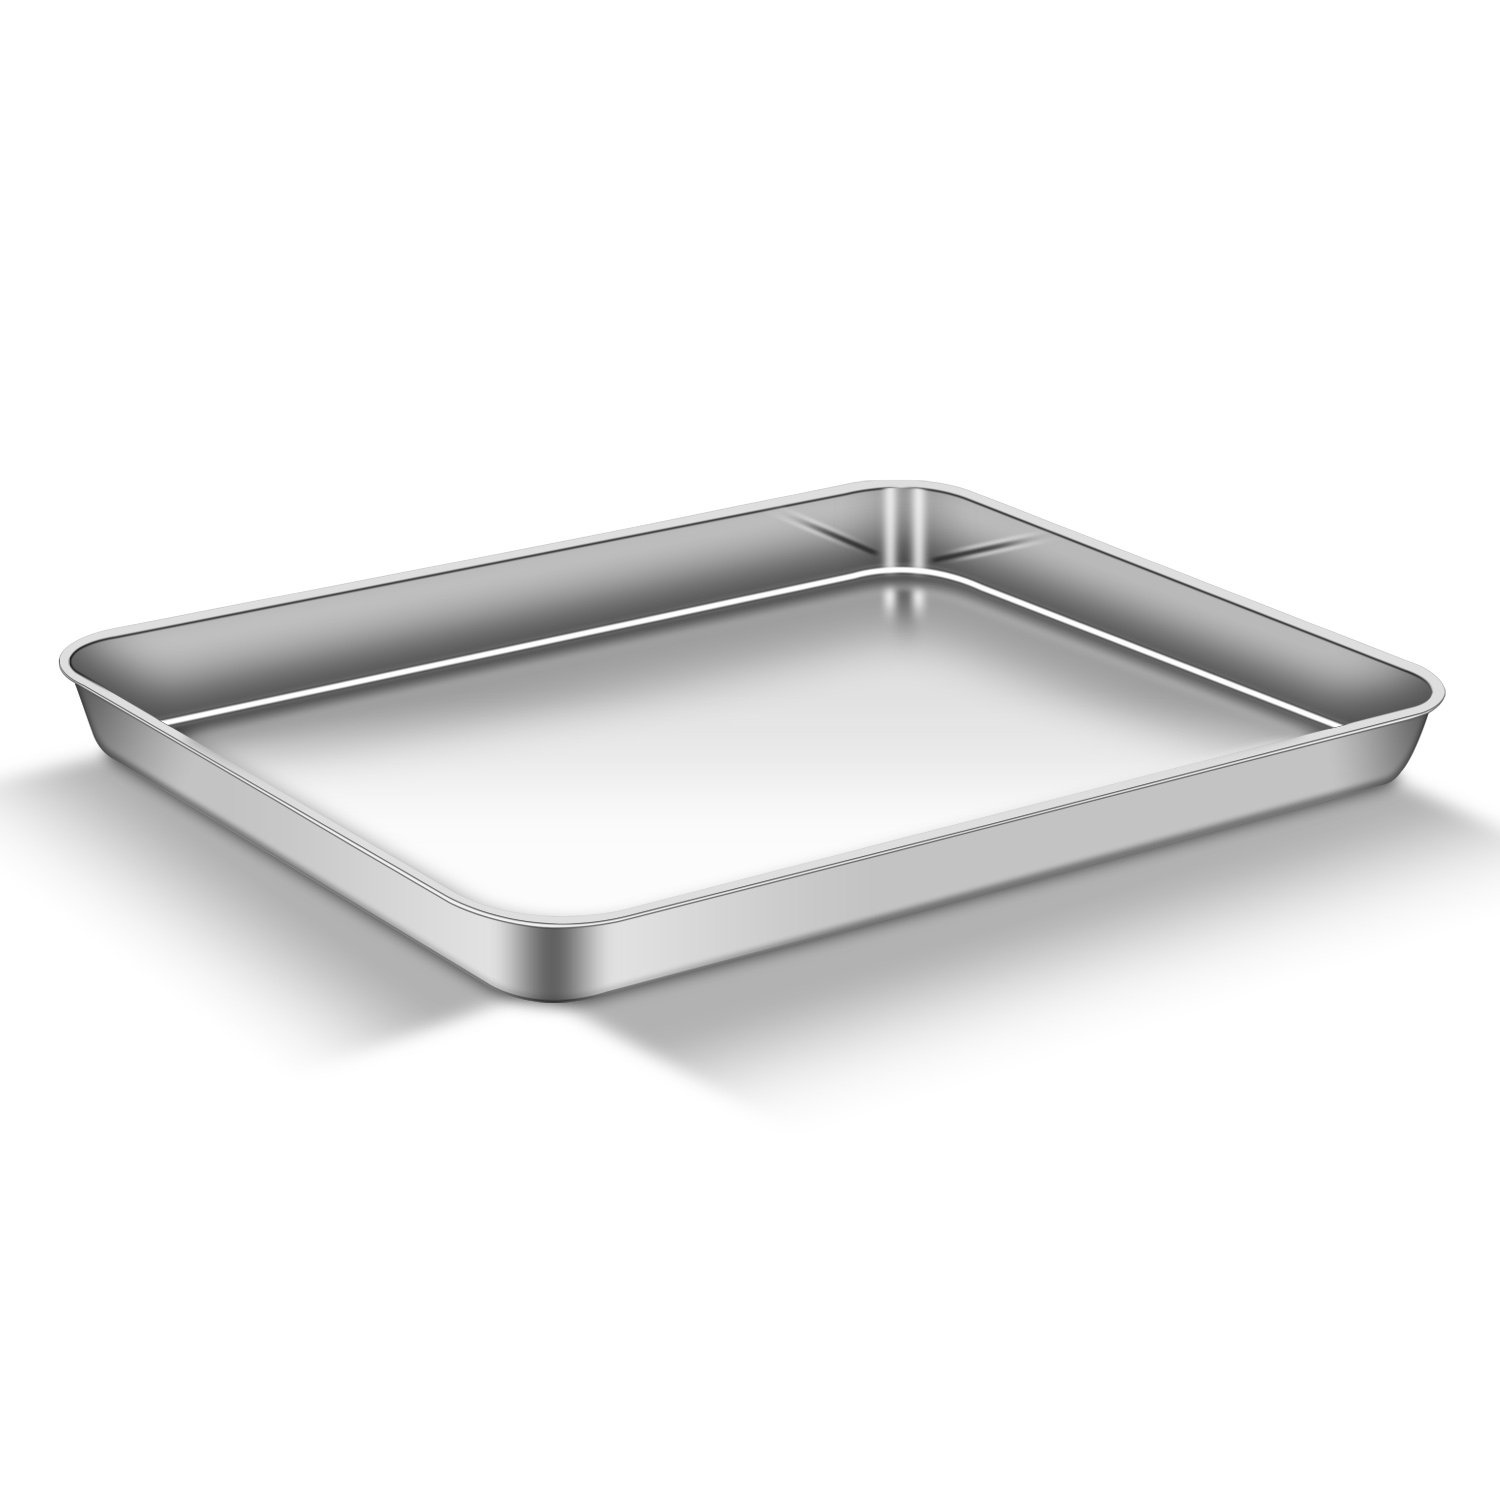 AEMIAO Baking Sheet (16'' x 12'' x1''), Stainless Steel 18/0 Bakeware Cookie Sheet Toaster Cake Pizza Oven Baking Pan Tray for Home Kitchen, Healthy Non Toxic, Mirror Finish Rust Free, Dishwasher Safe by AEMIAO